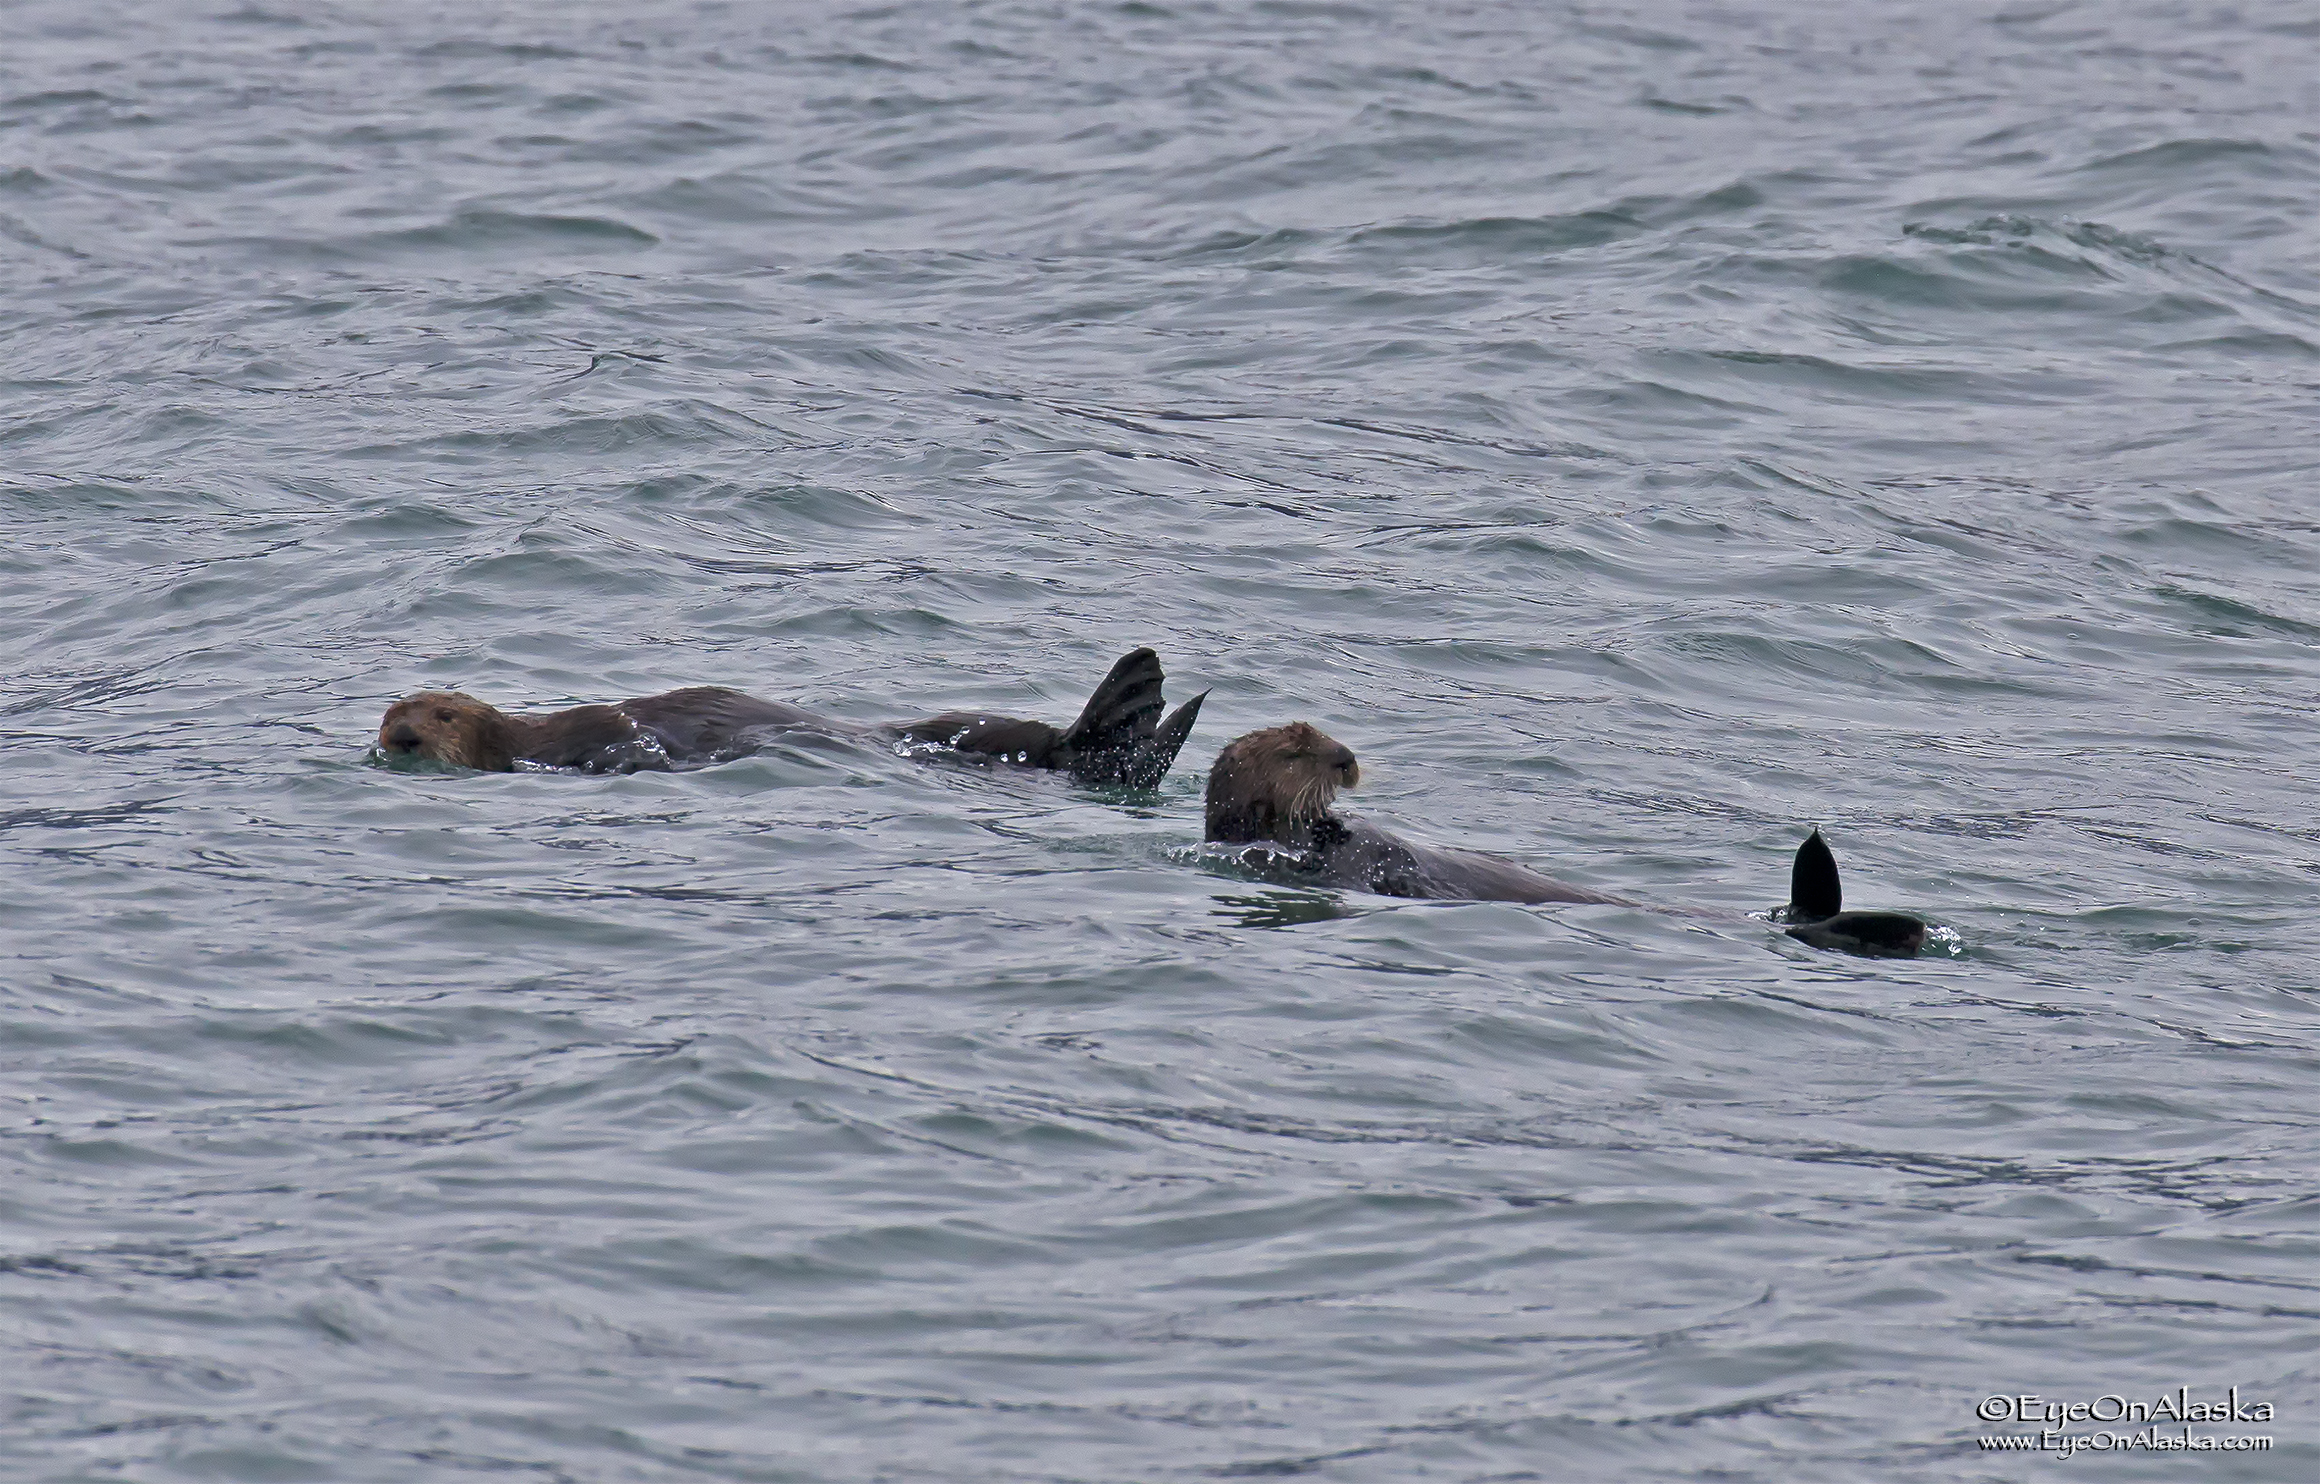 No whales this weekend, just lots of sea otters.